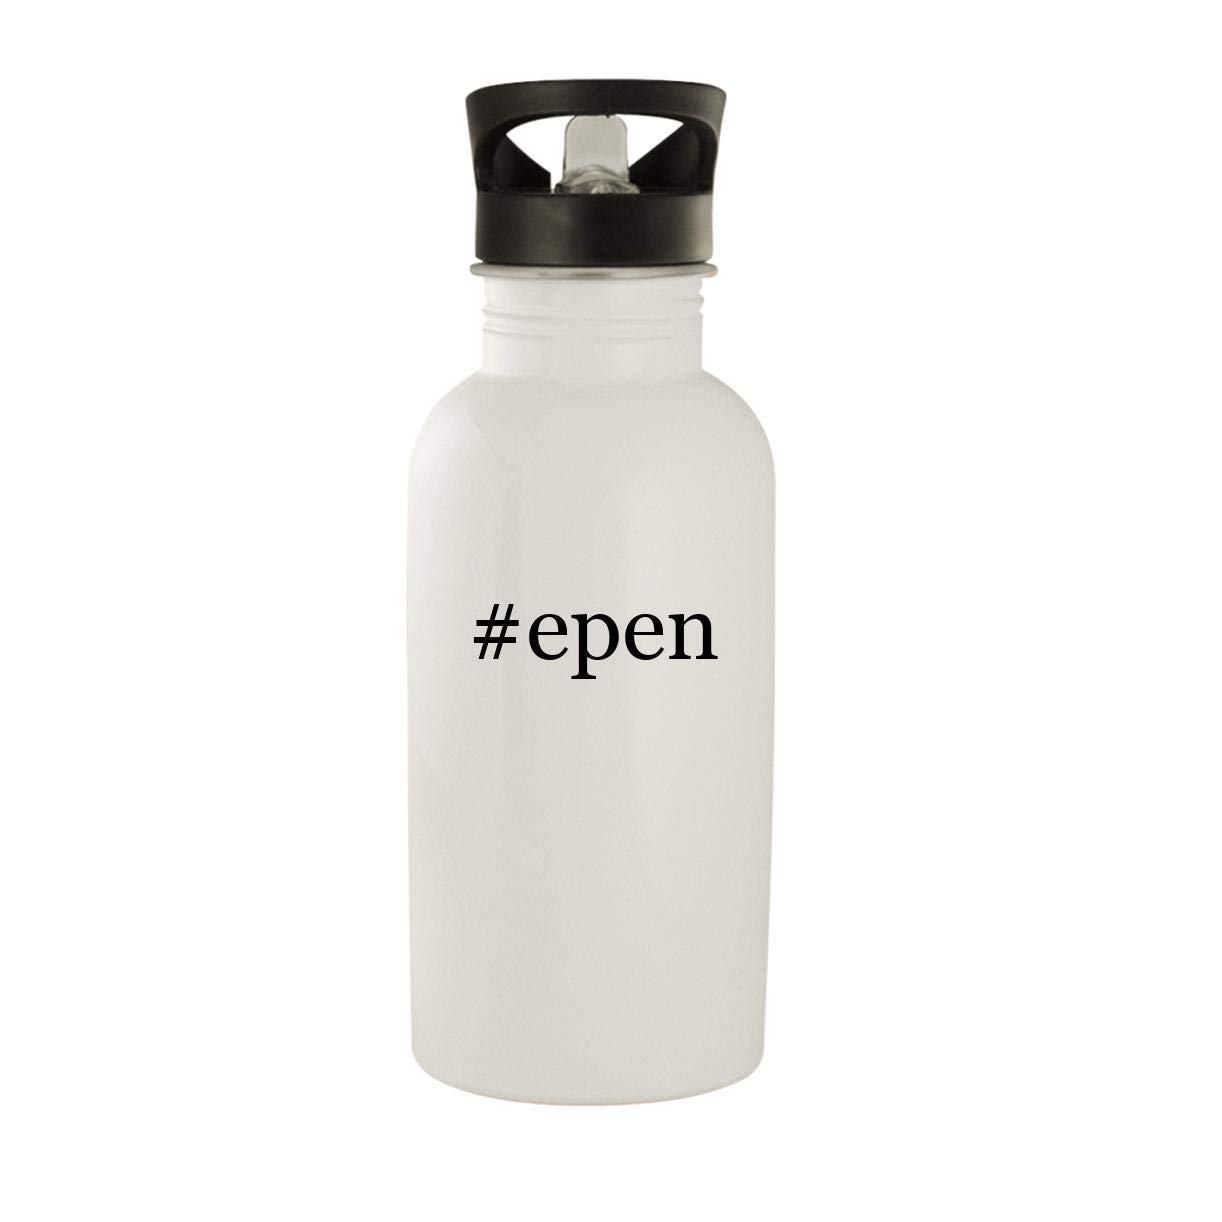 #epen - Stainless Steel Hashtag 20oz Water Bottle, White